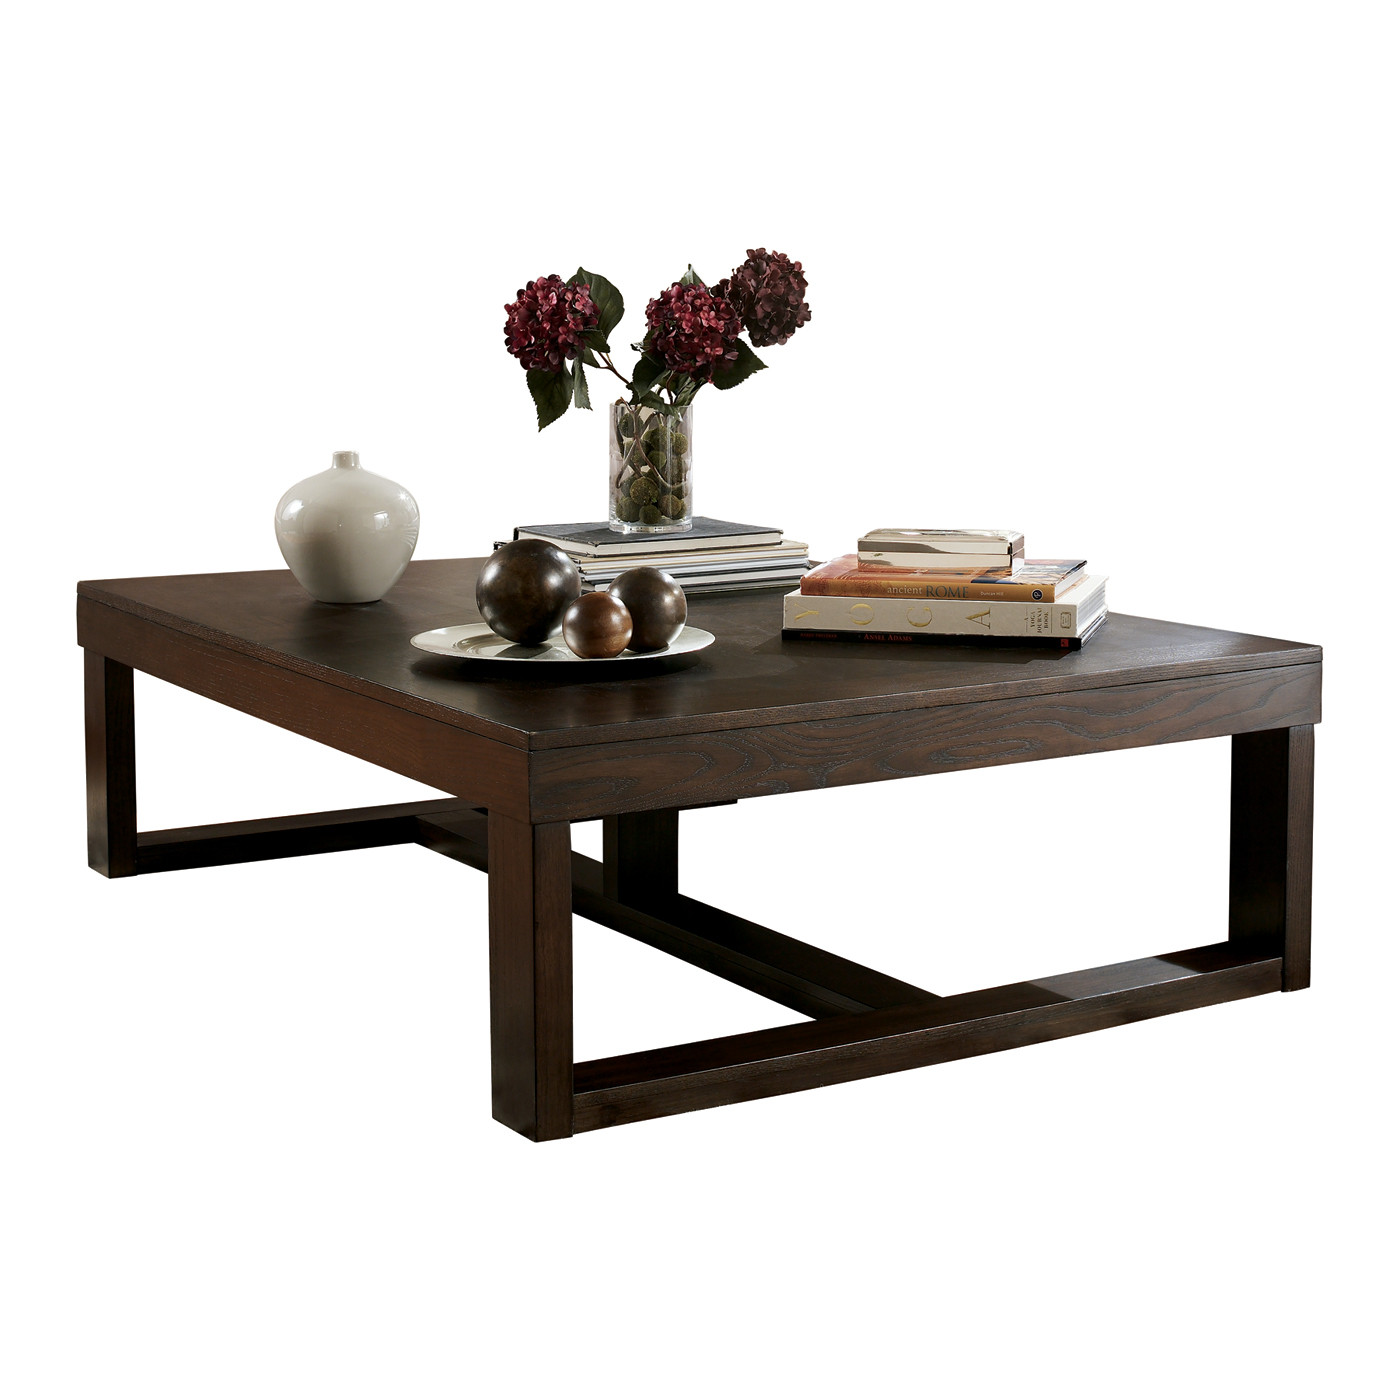 Best ideas about Ashley Coffee Table . Save or Pin Signature Design by Ashley T481 1 Watson Rectangular Now.